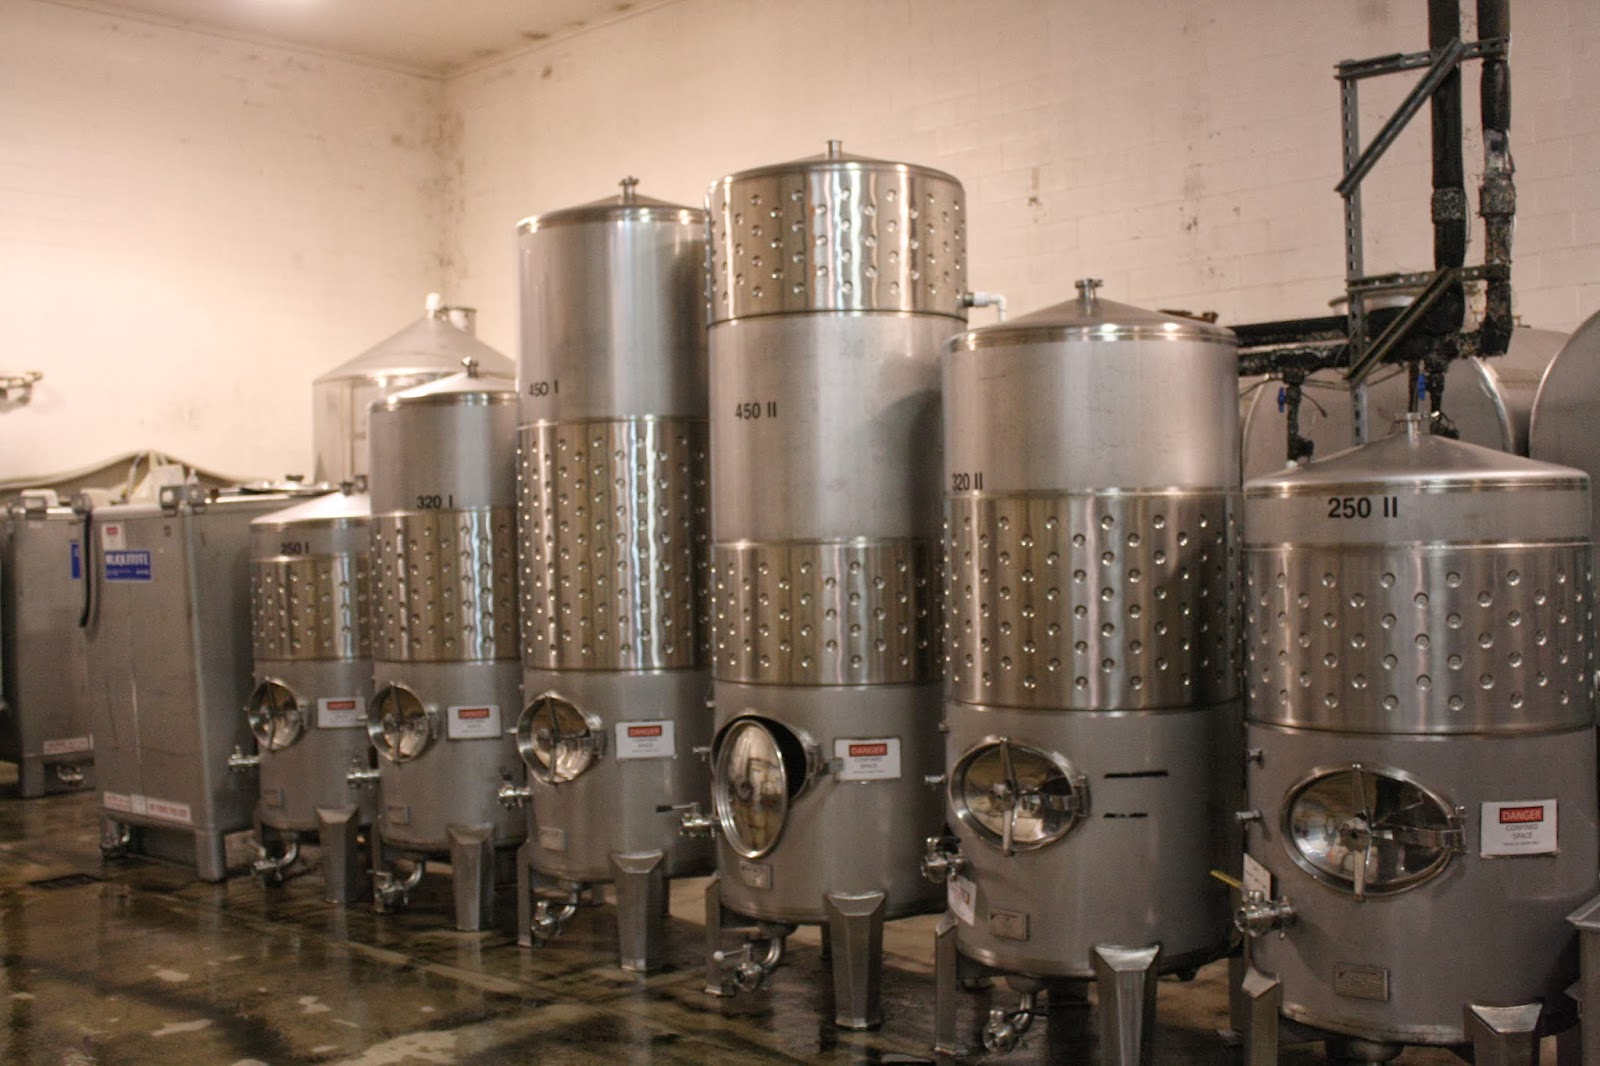 Aging wine in Stainless Steel Tanks, Oak Barrels